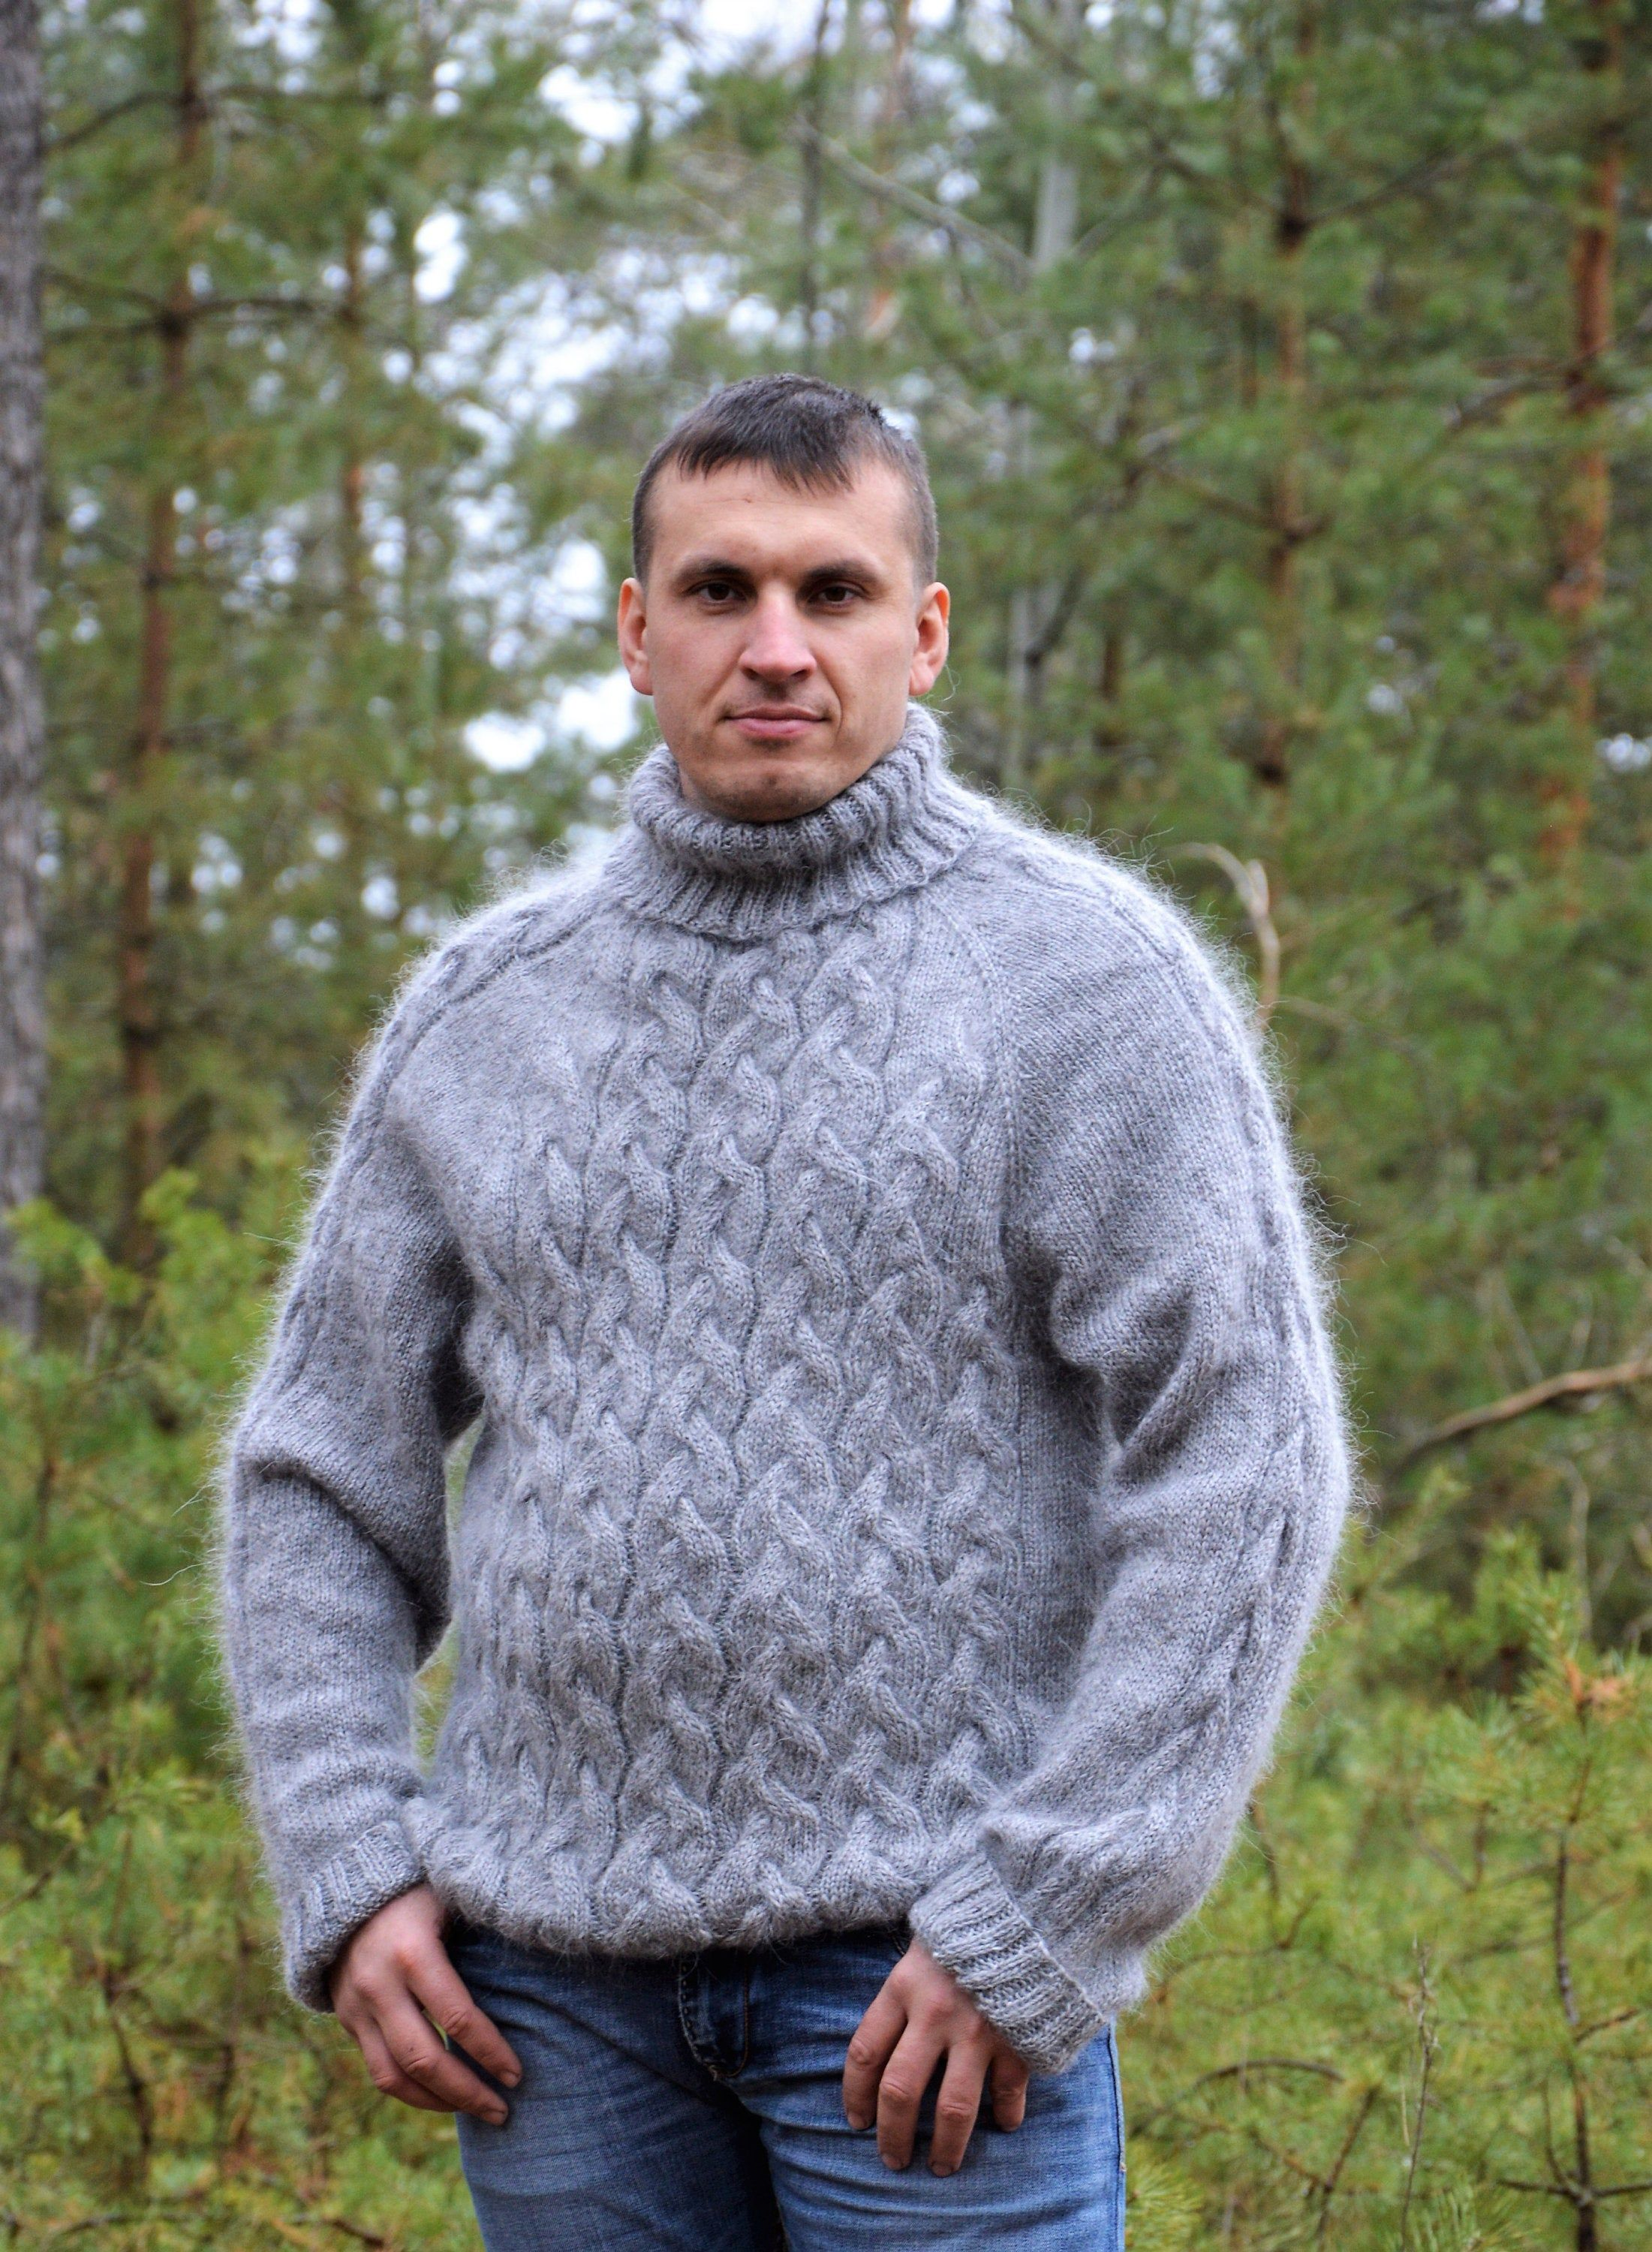 Warm knitted sweater made of cashmere and wool